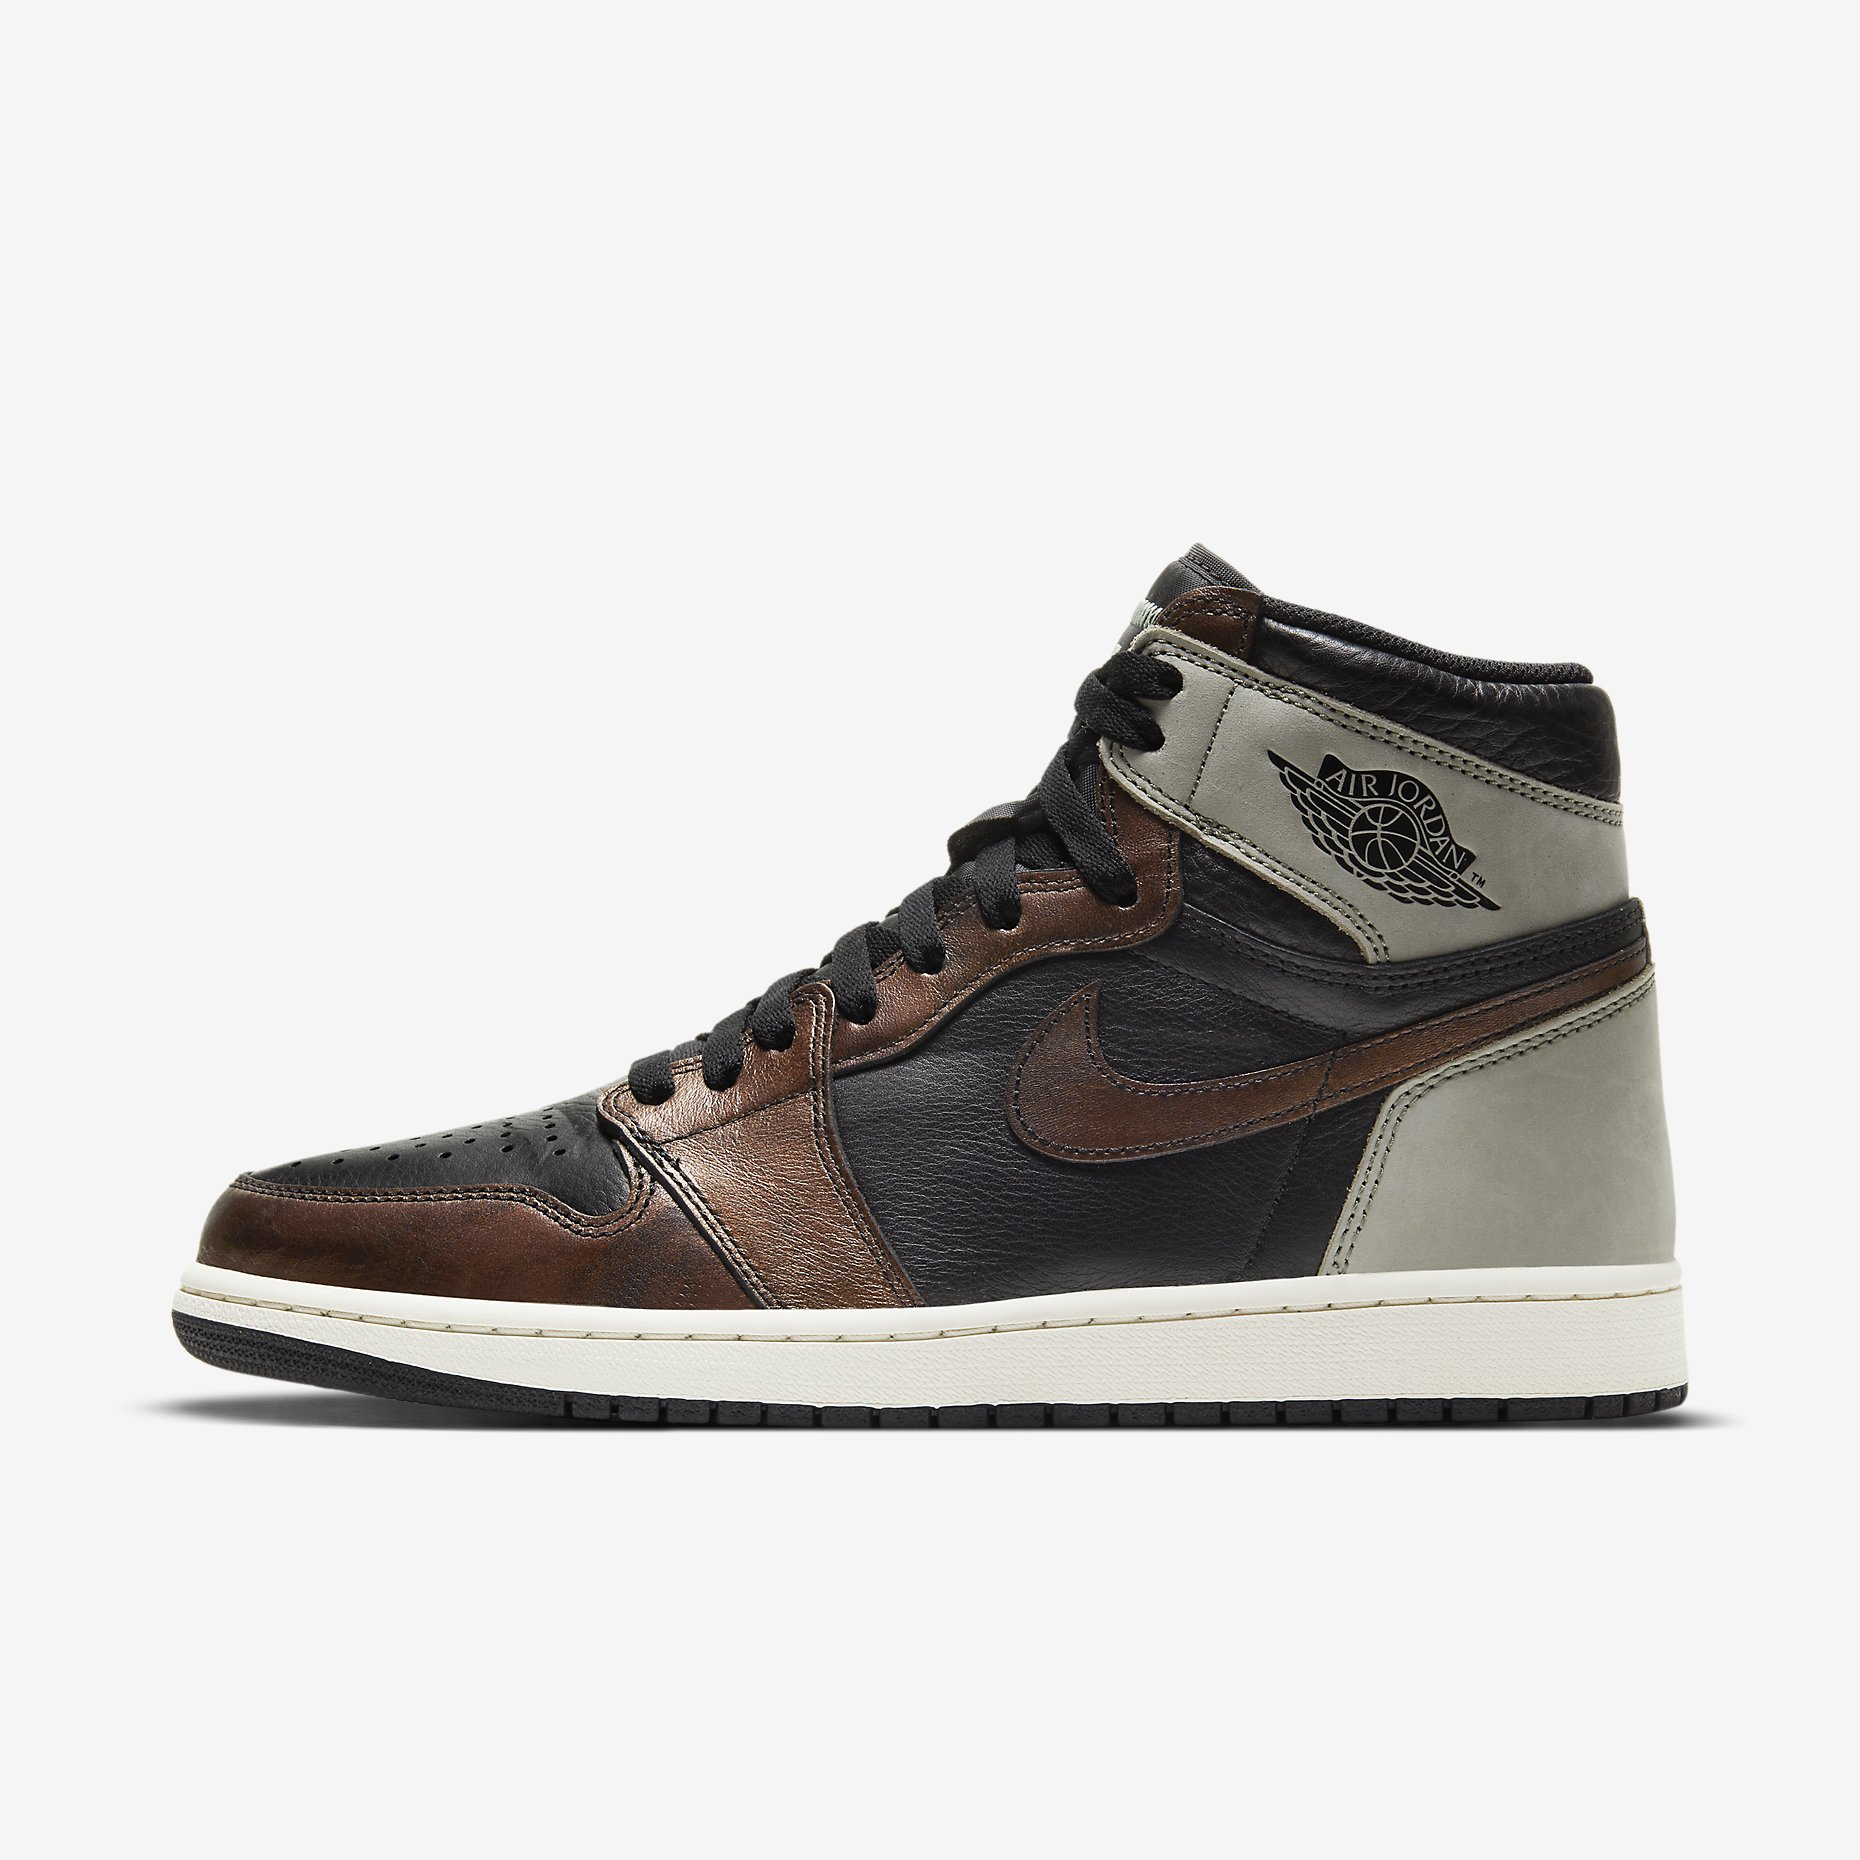 Air Jordan 1 Retro High OG 'Rust Shadow'}